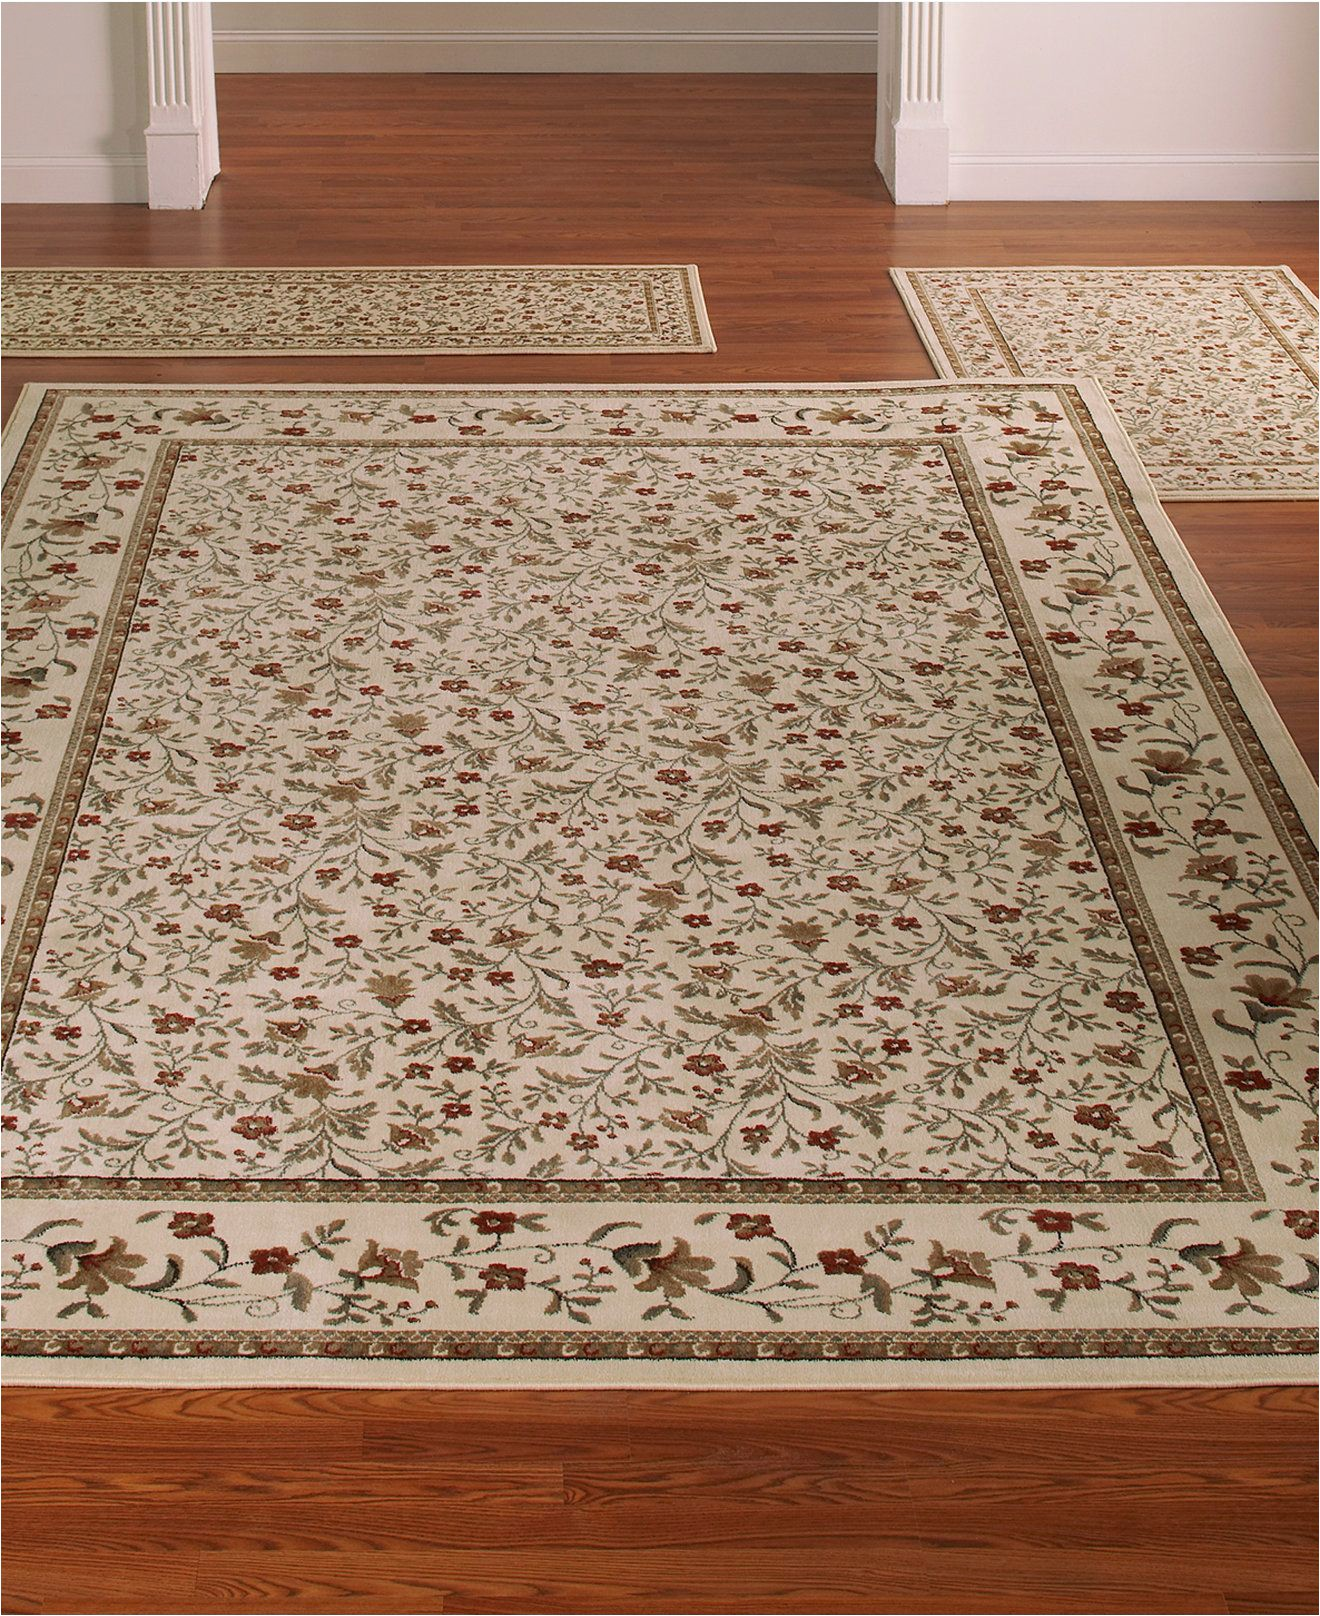 Discount area Rugs 8 X 10 area Rugs 8×10 Cheap area Rugs 8×10